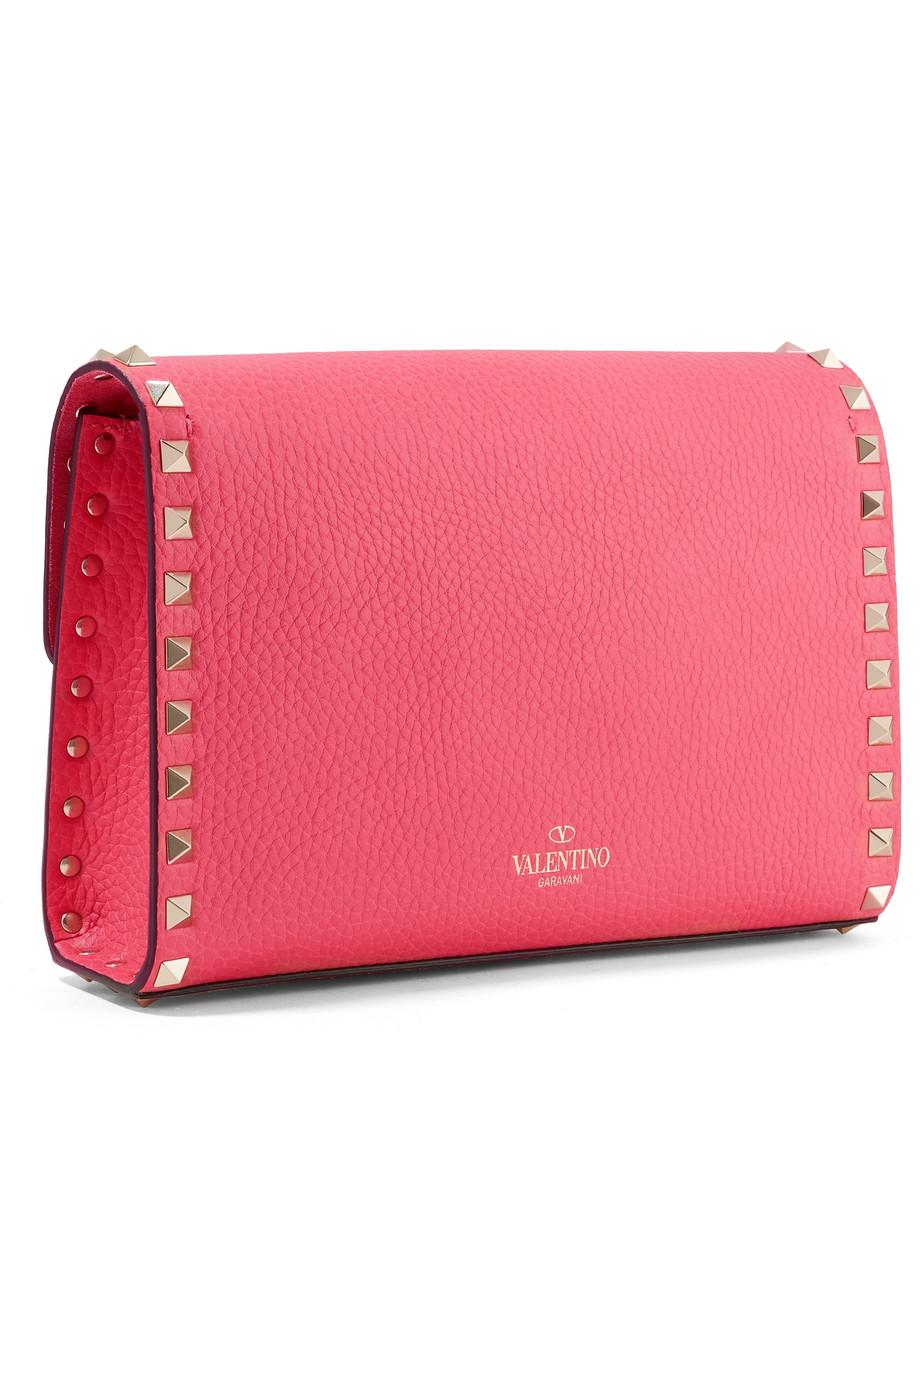 8d3e7b483e6d Lyst - Valentino Rockstud Textured-leather Shoulder Bag in Pink